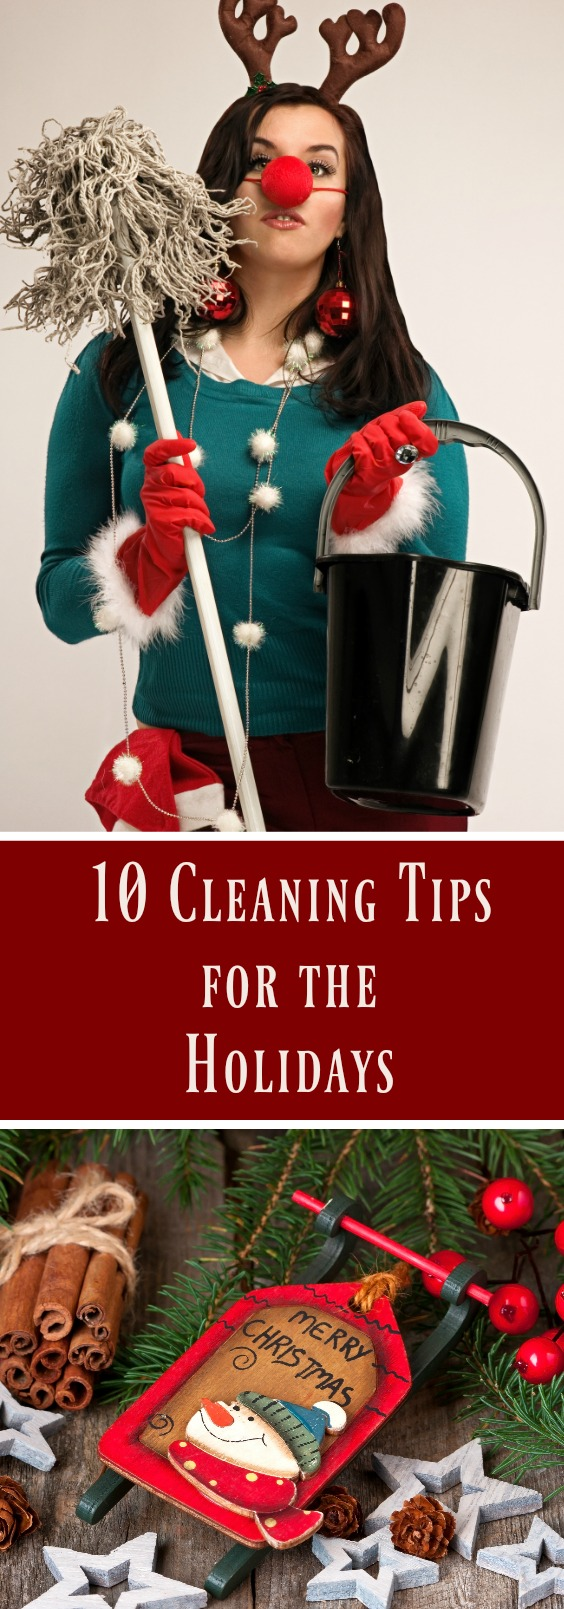 10-cleaning-tips-for-the-holidays